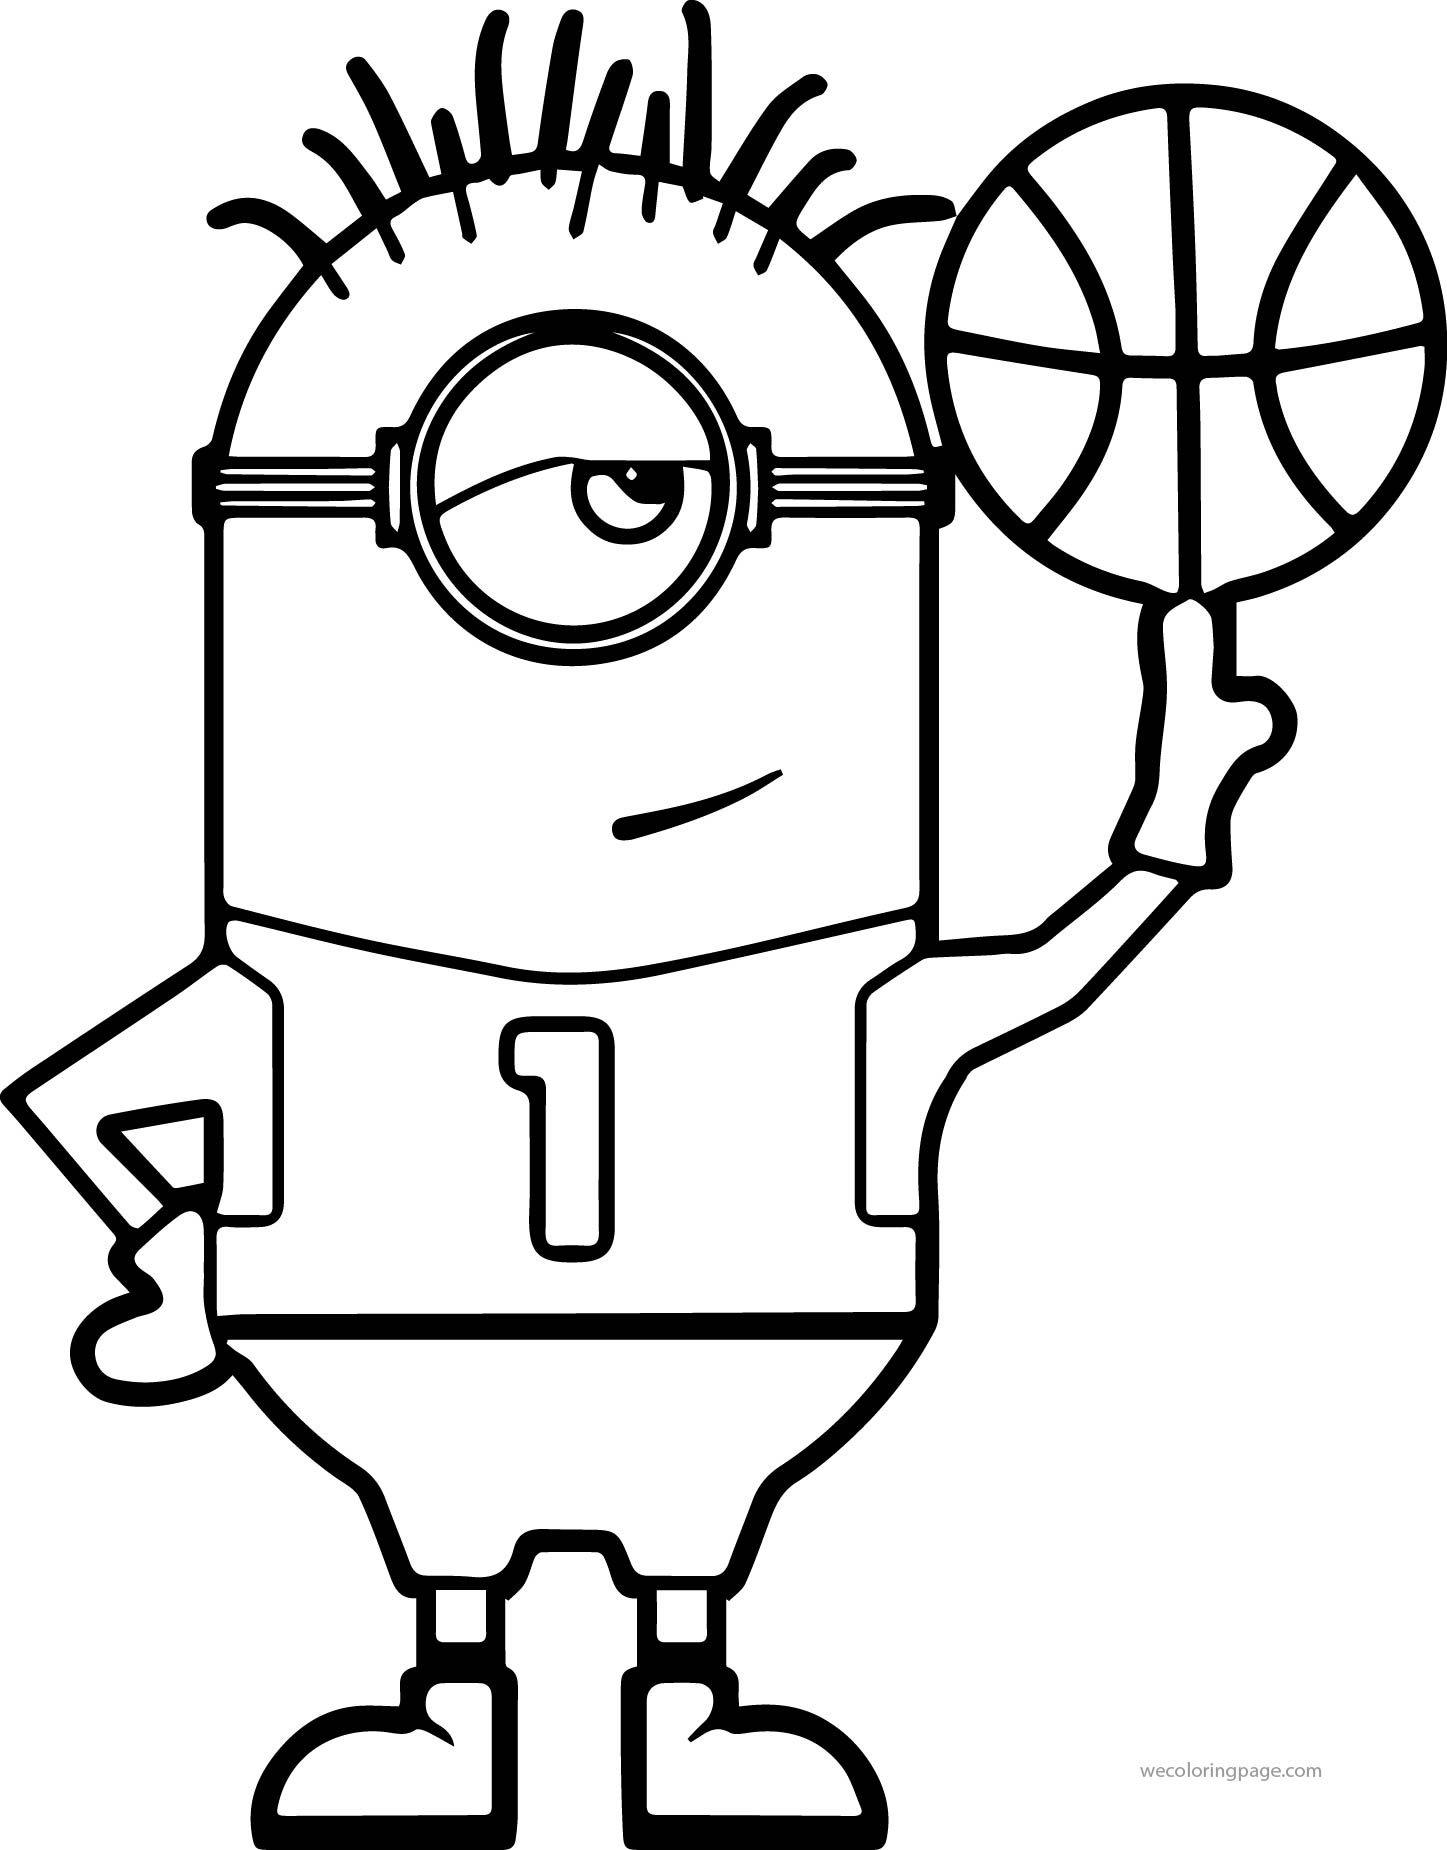 basketball coloring page - Etame.mibawa.co